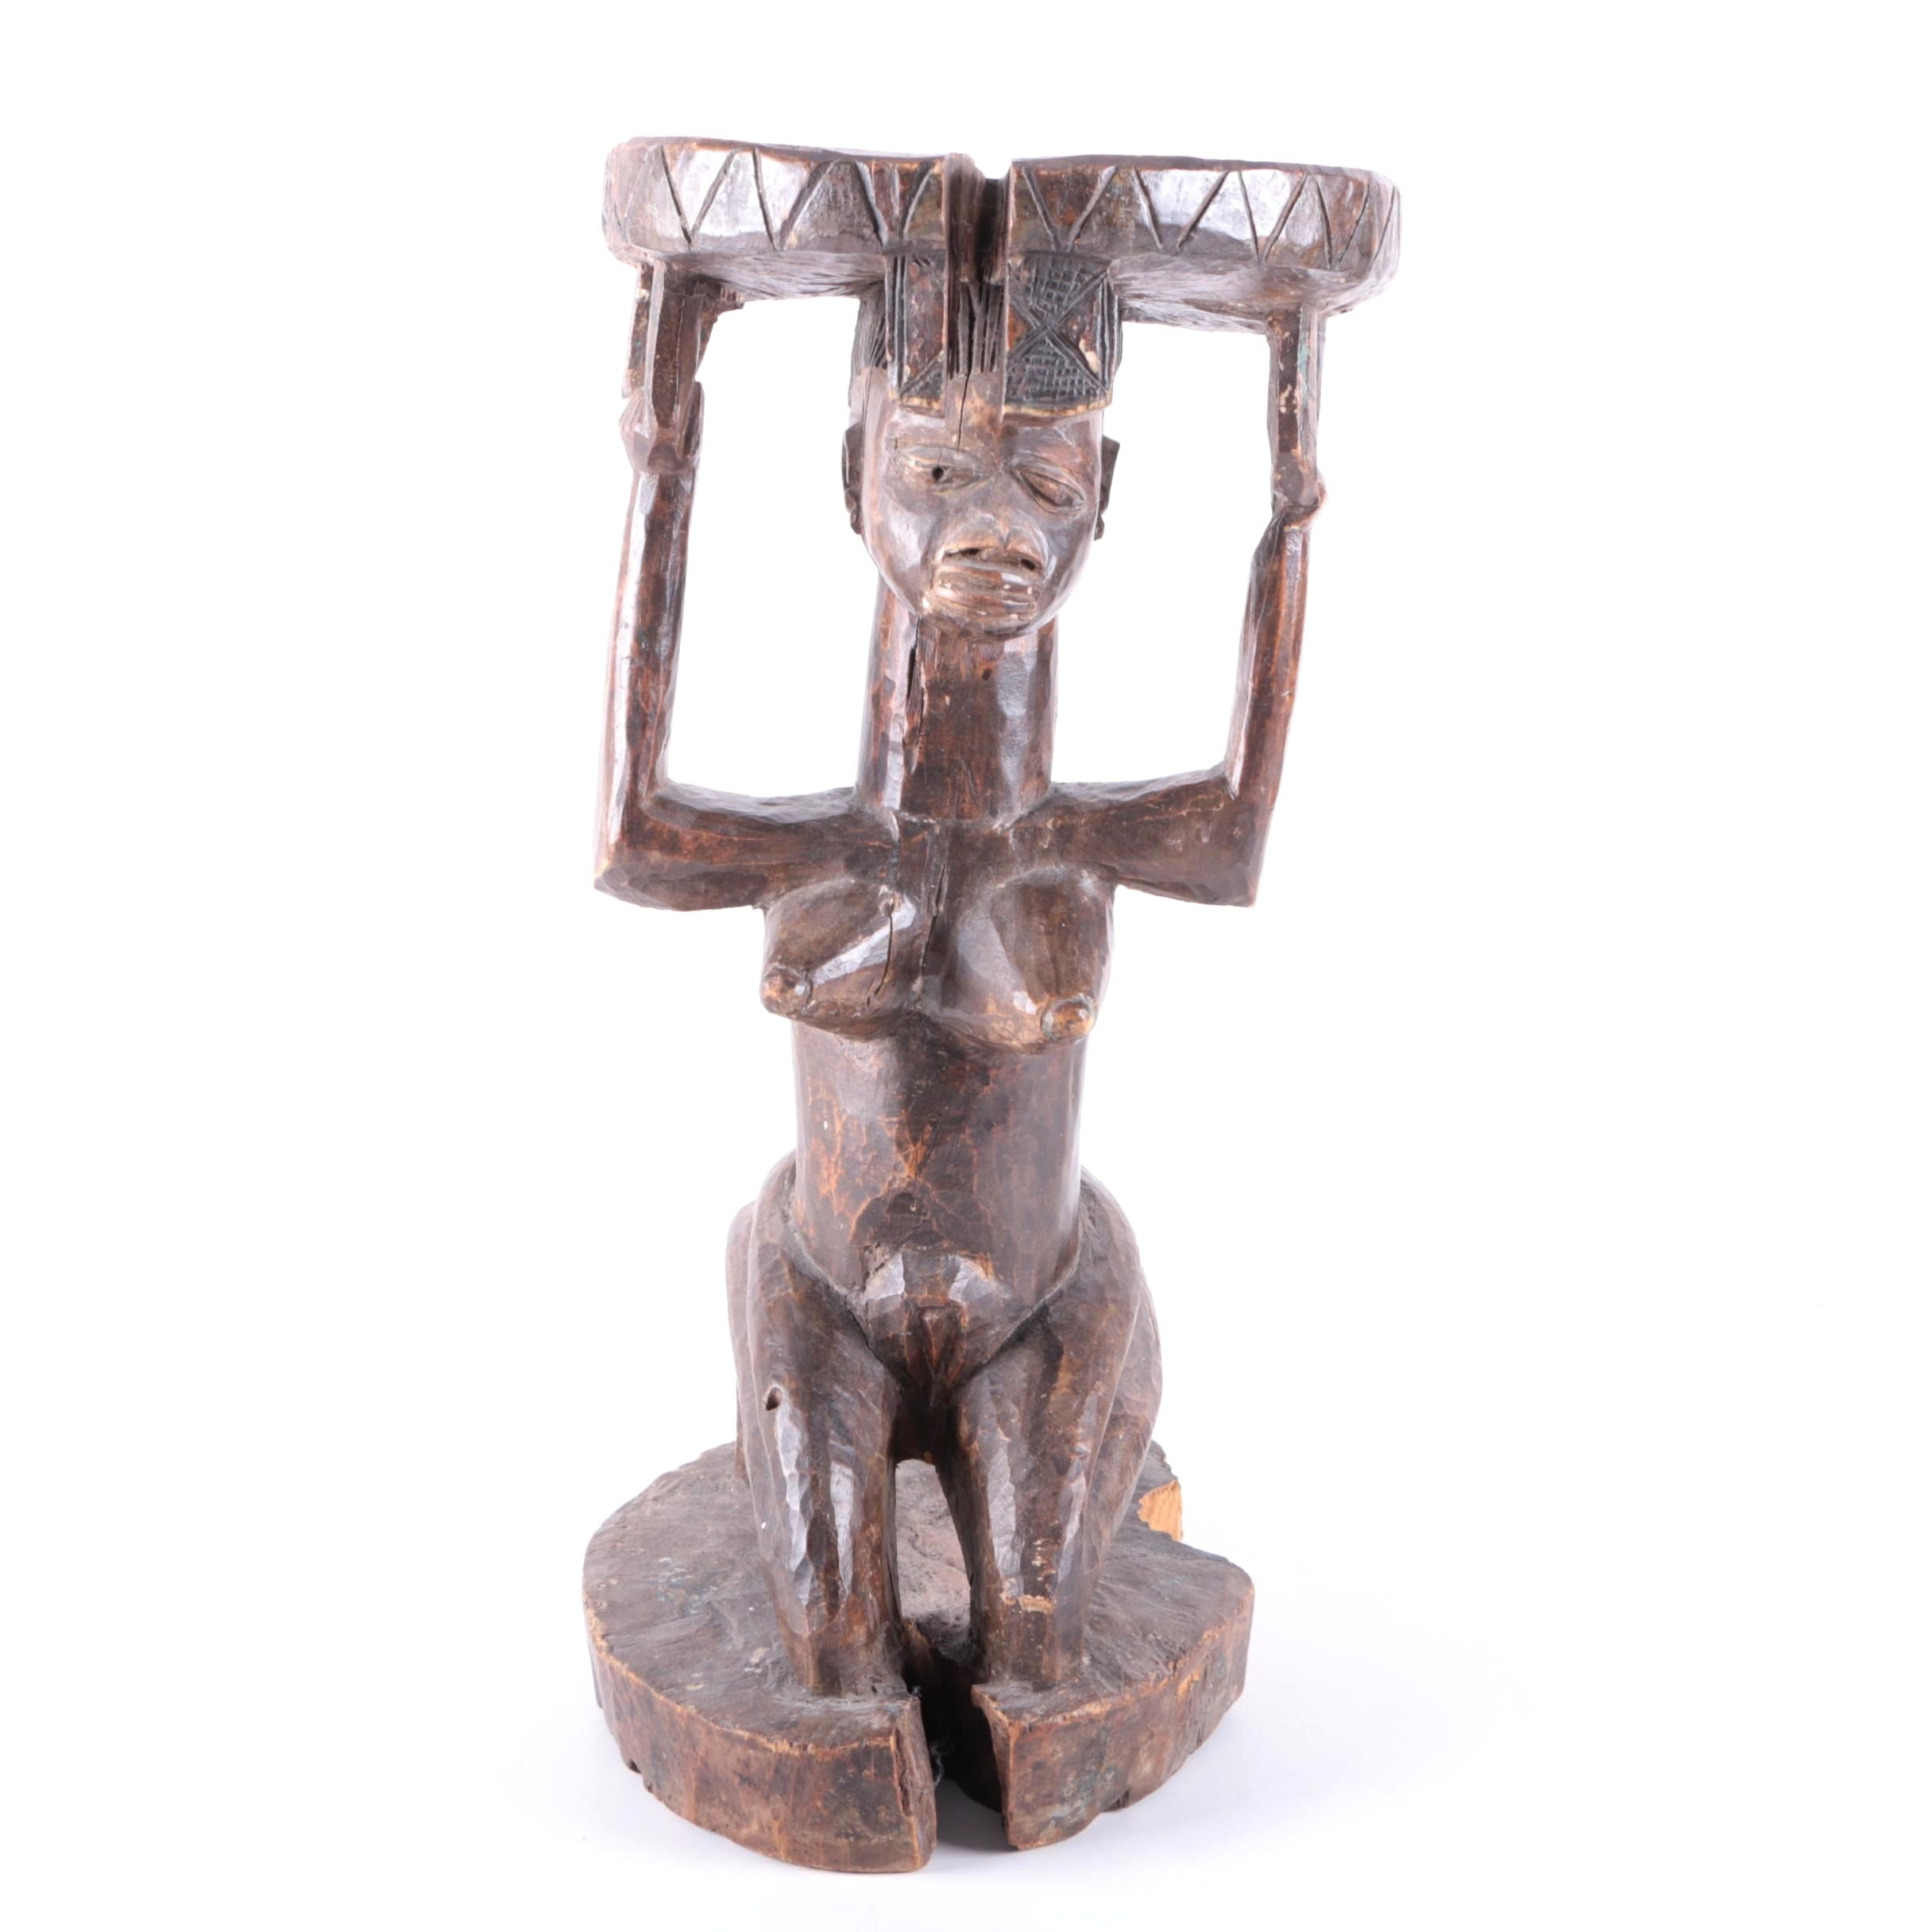 Carved Wood African Figurine